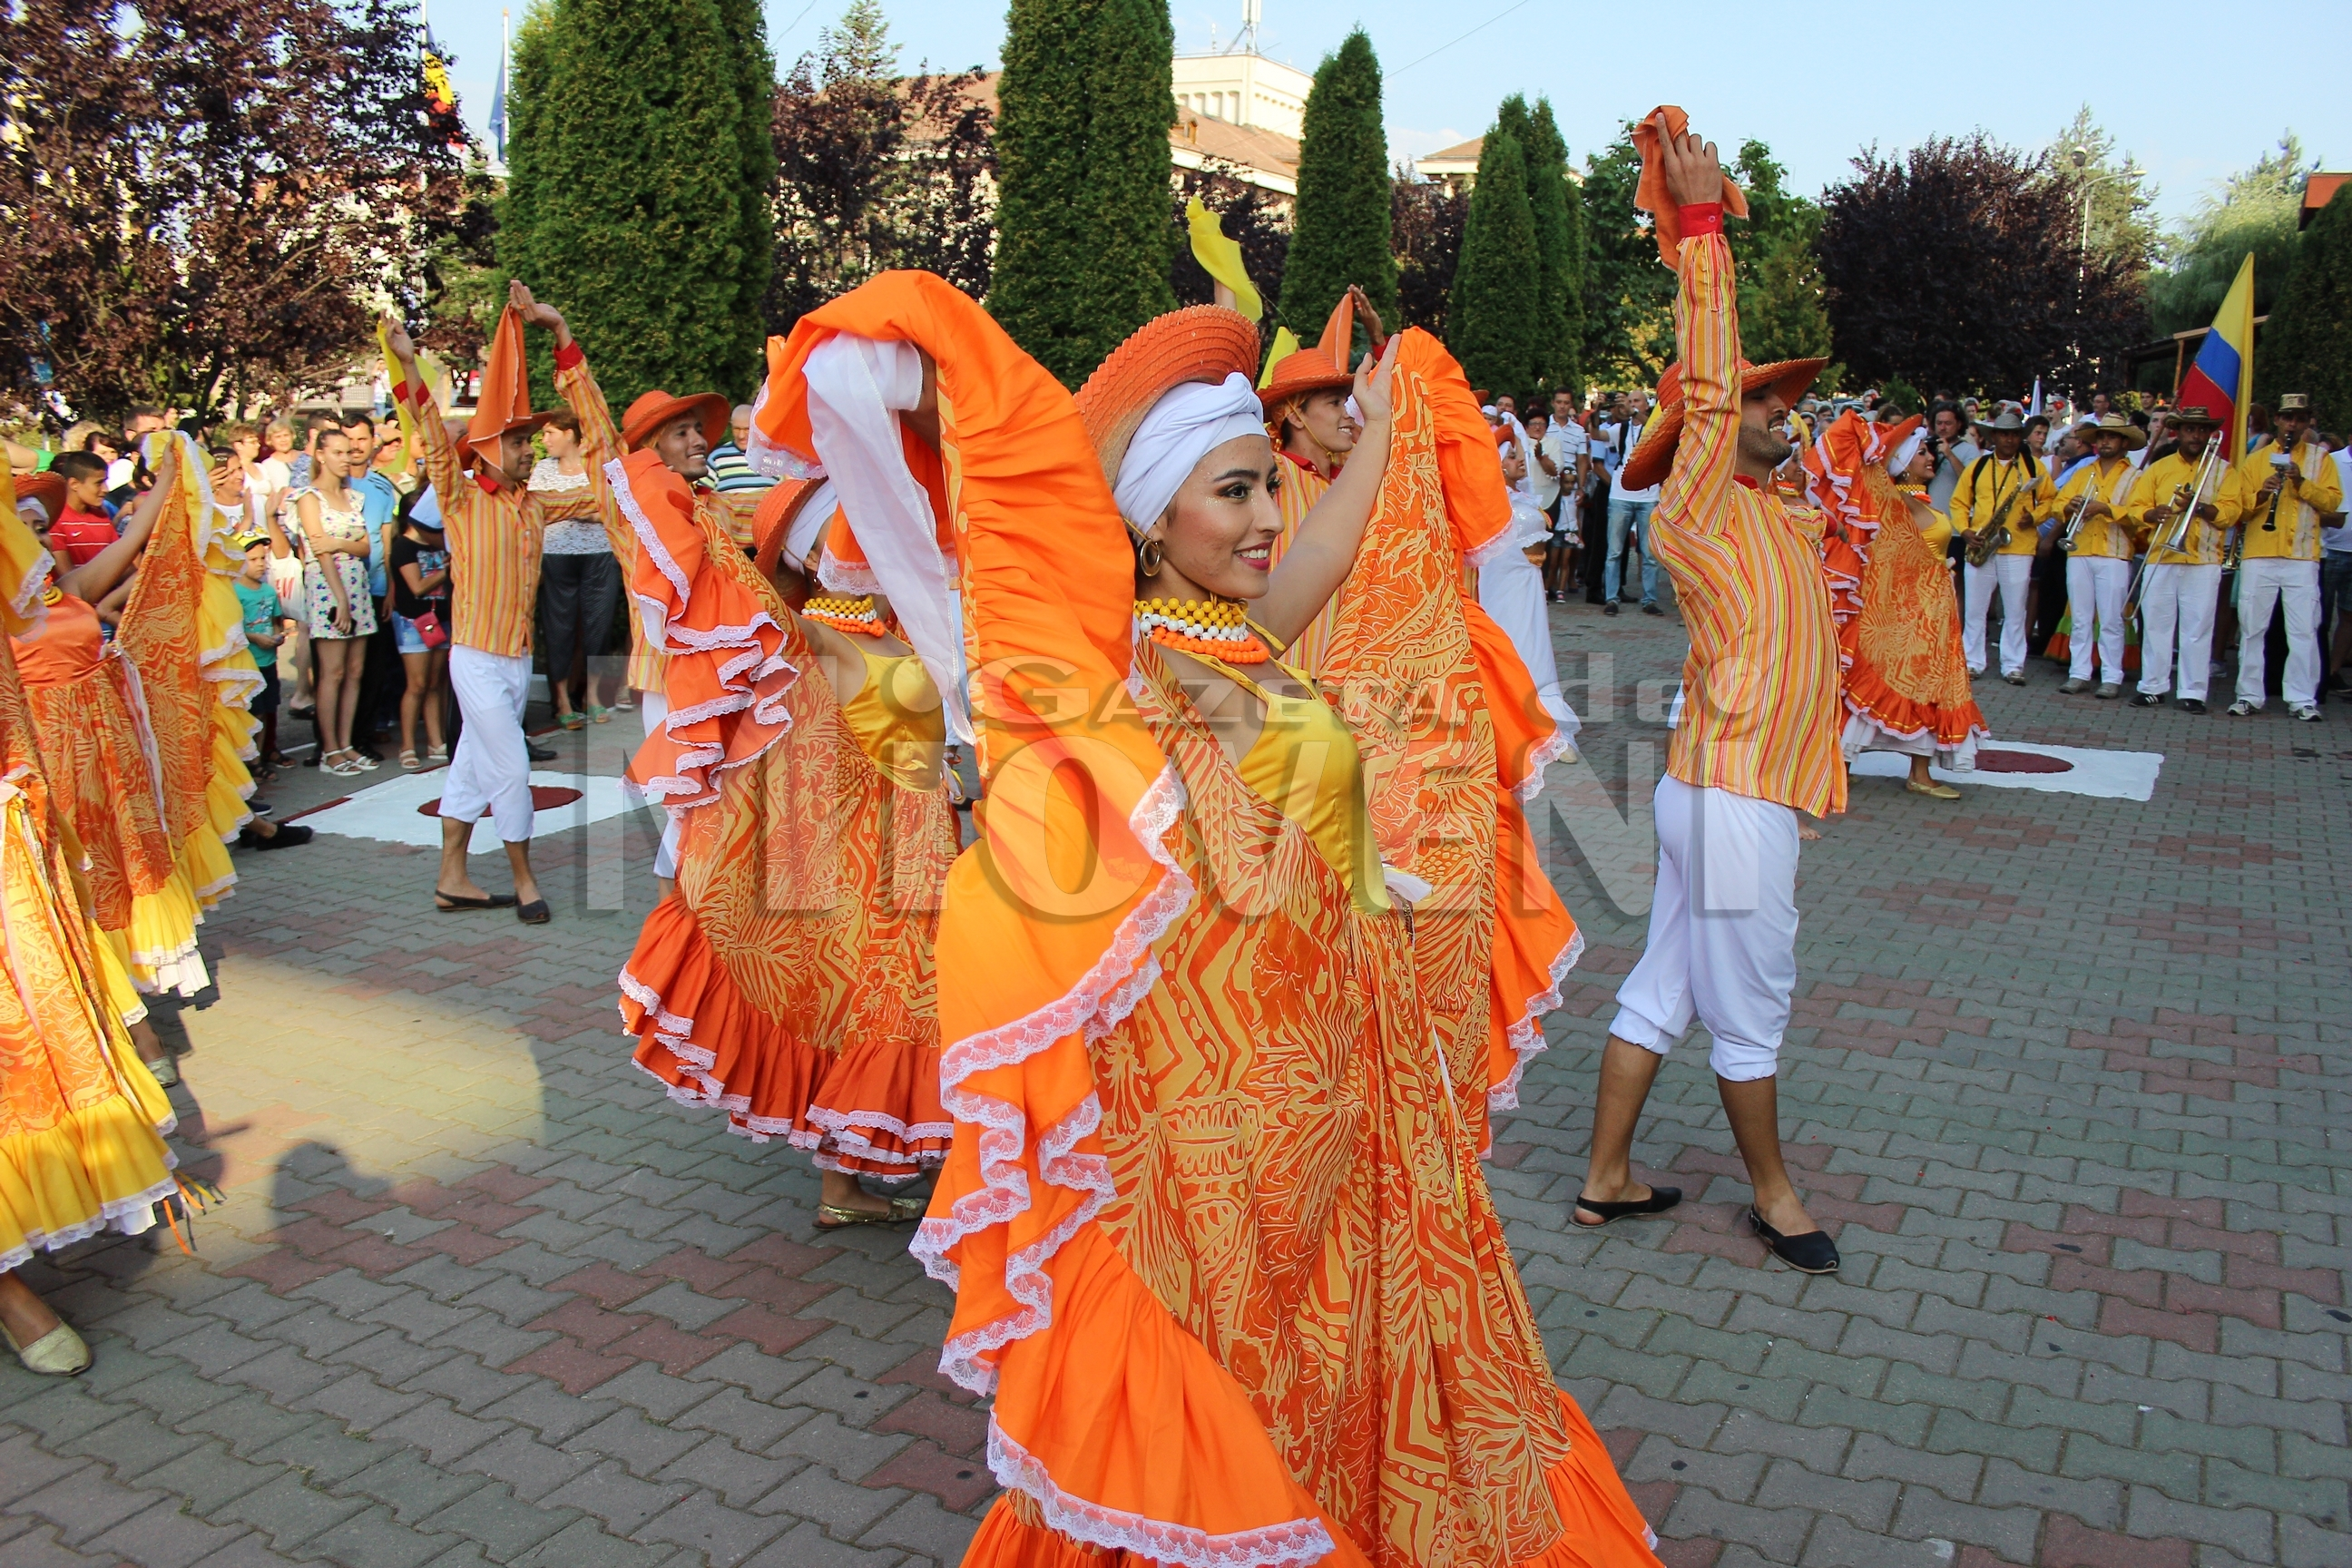 festivalul-international-de-folclor-carpati-mioveni-11-august-2016 (11)